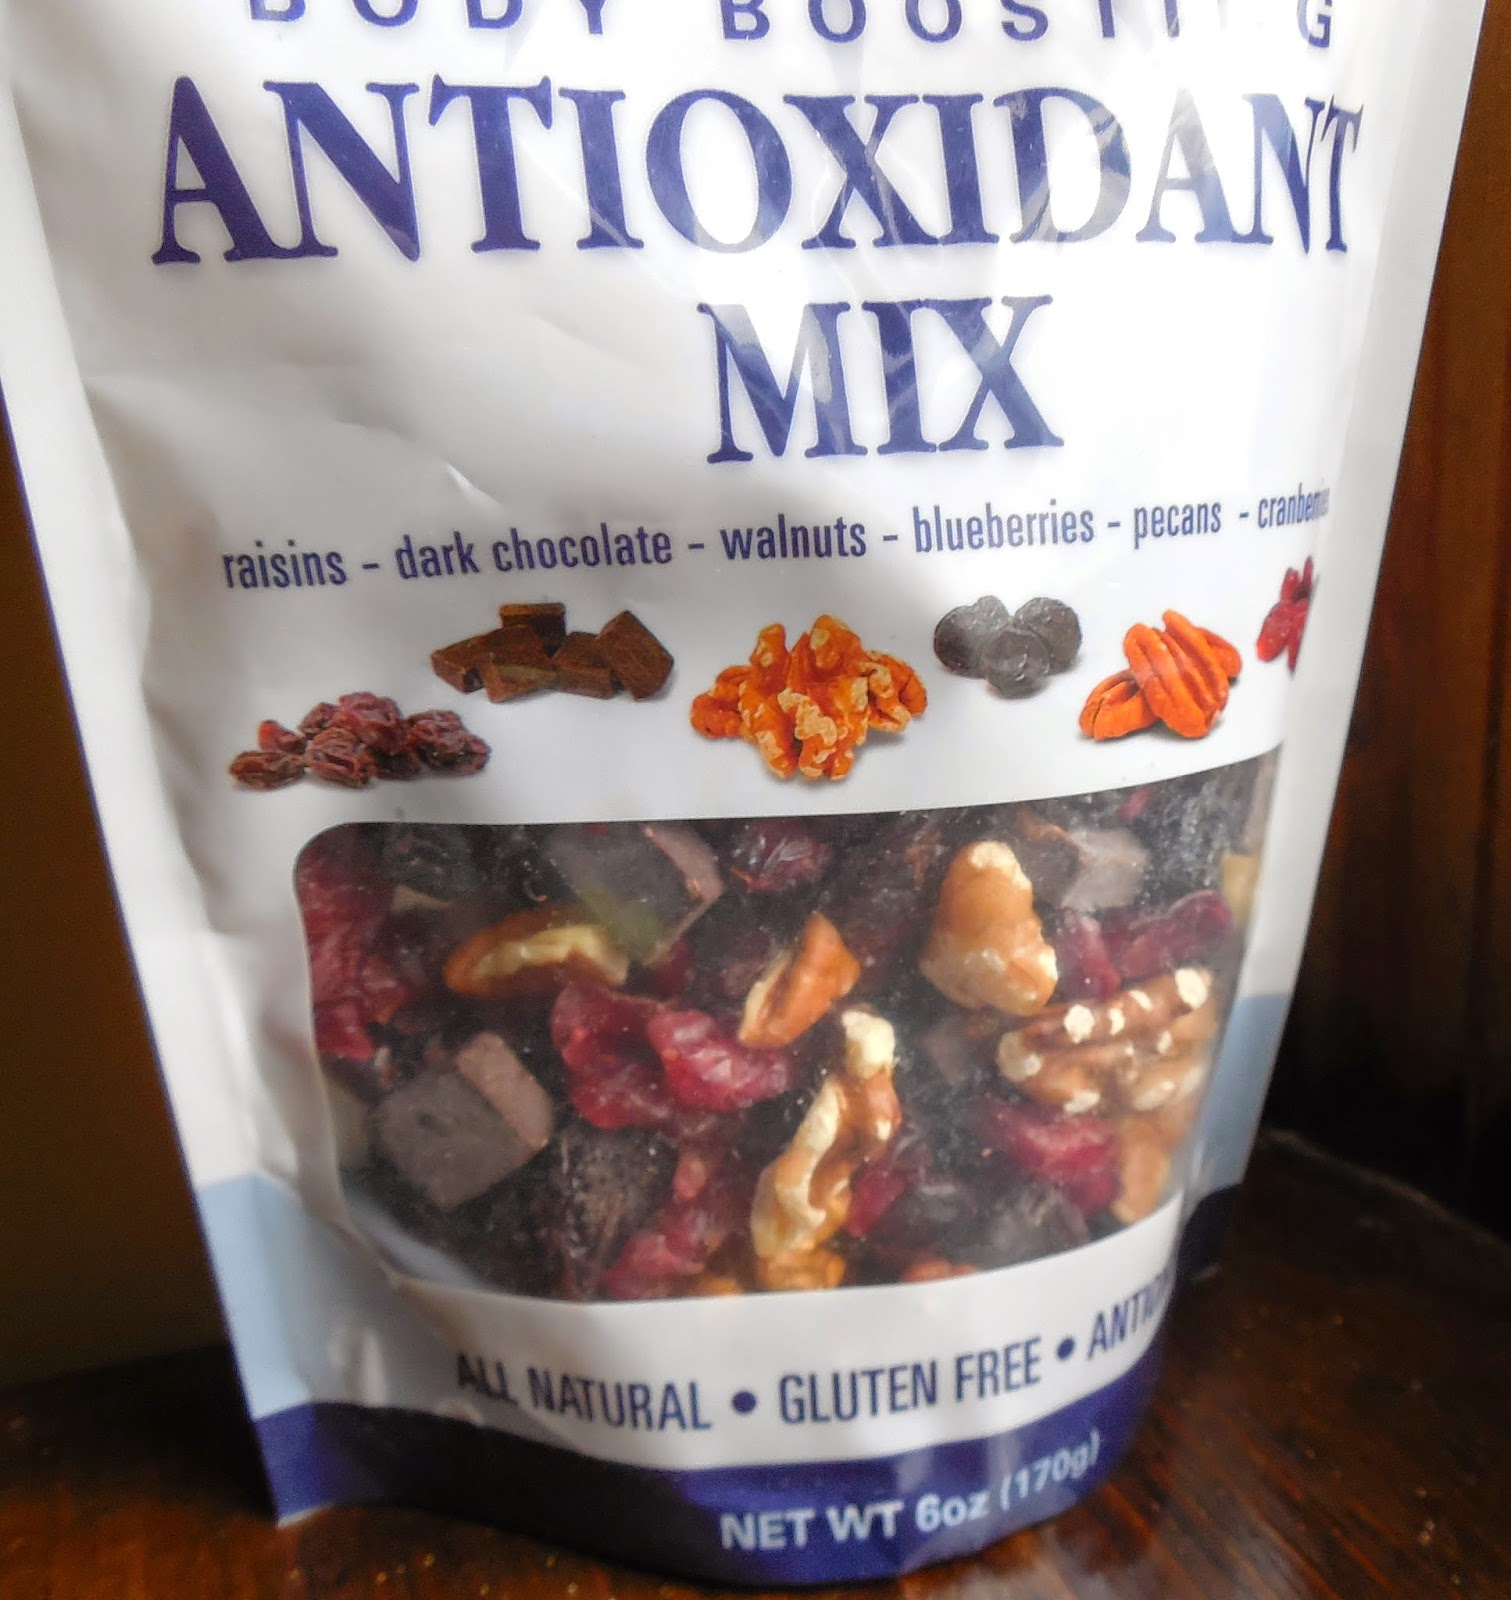 Gourmet Nut Antioxidant Mix